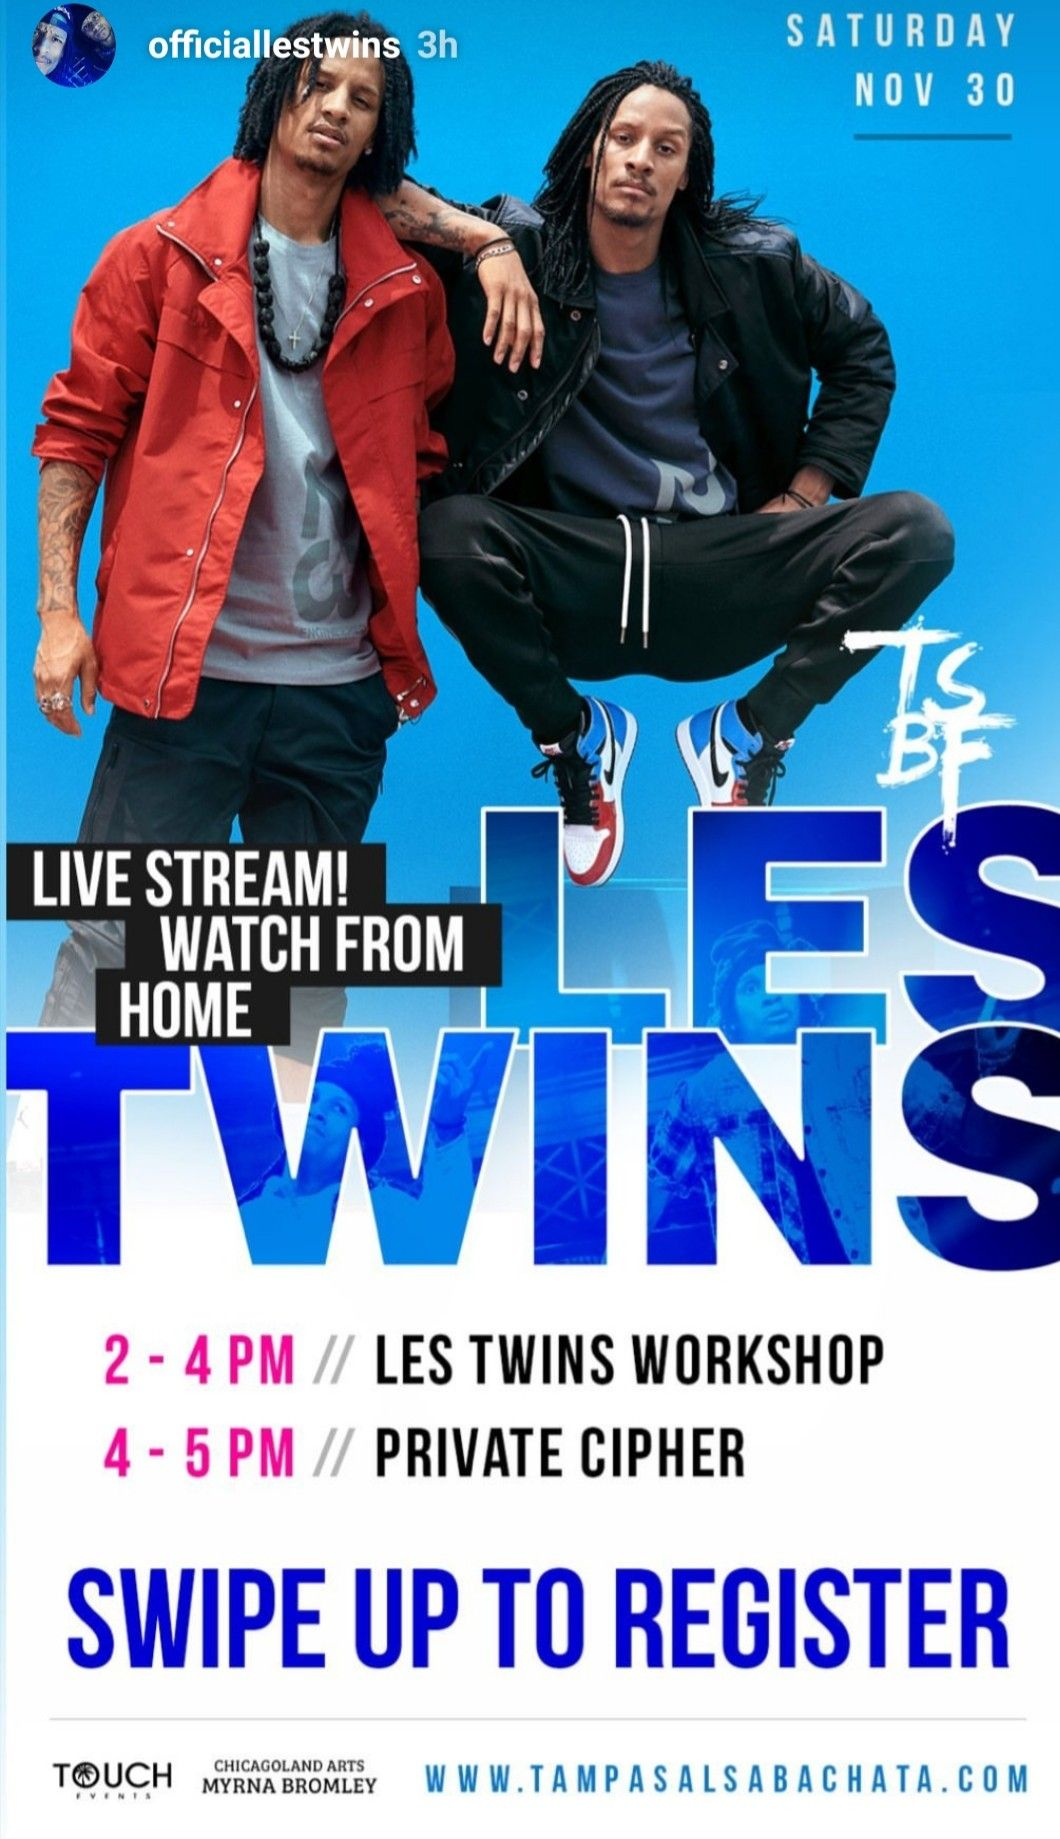 Pin By Karen Stout On For Les Twins Les Twins Twins Chicagoland